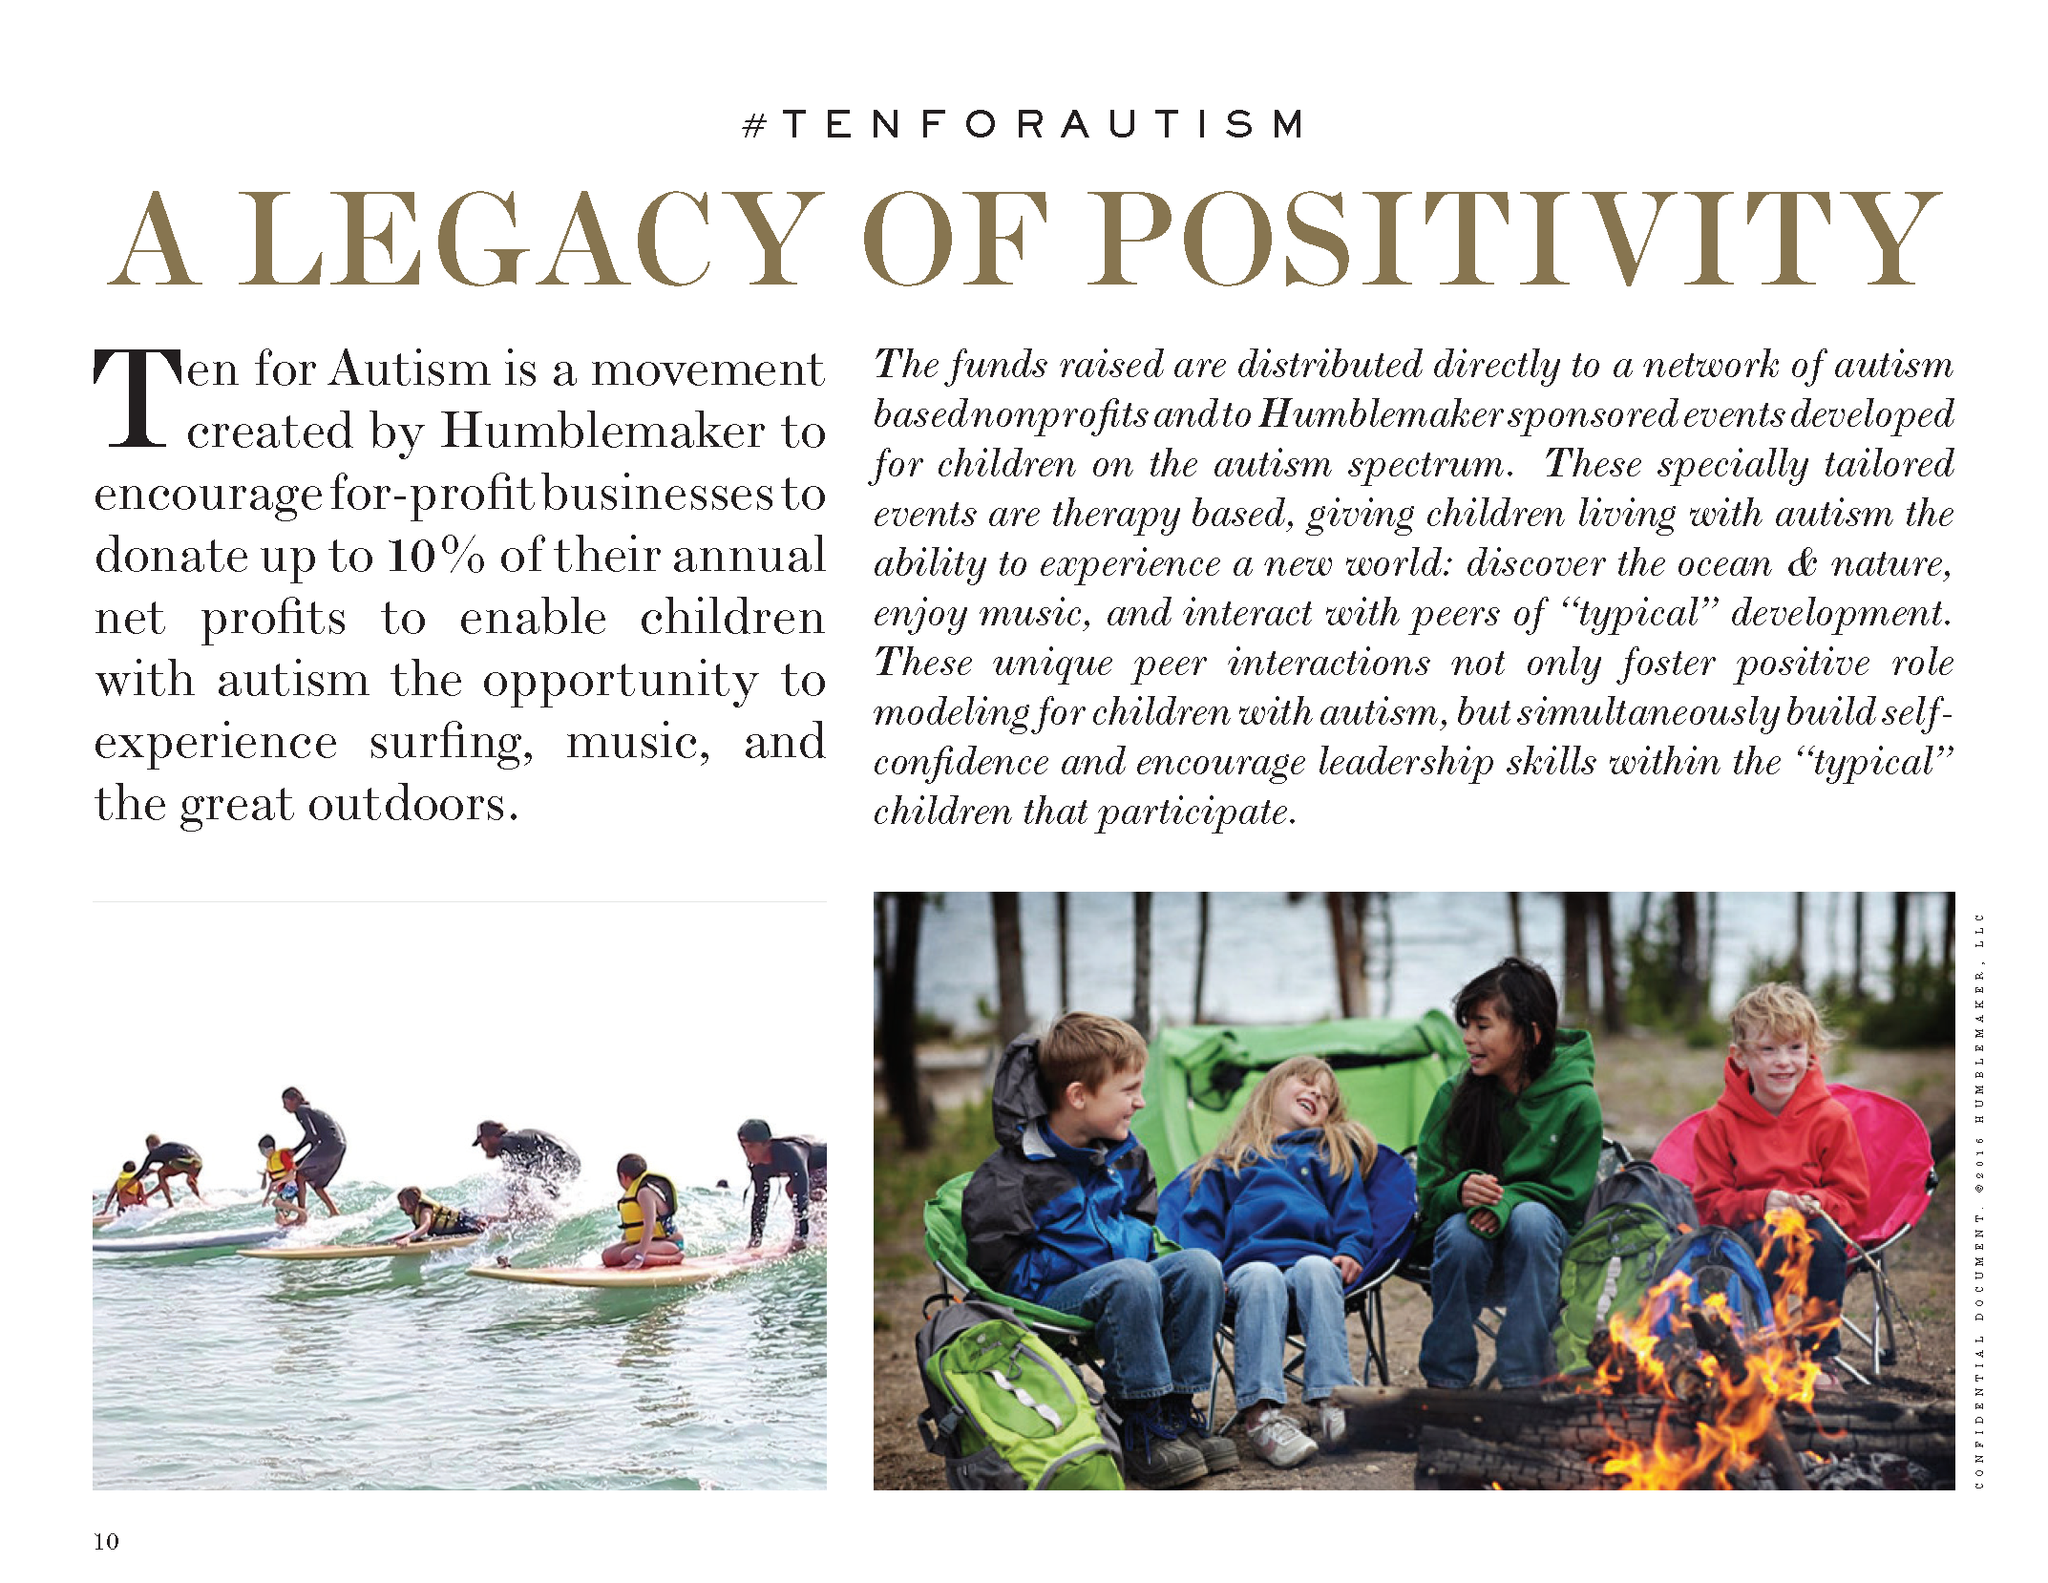 #tenforautism A Legacy of Positivity